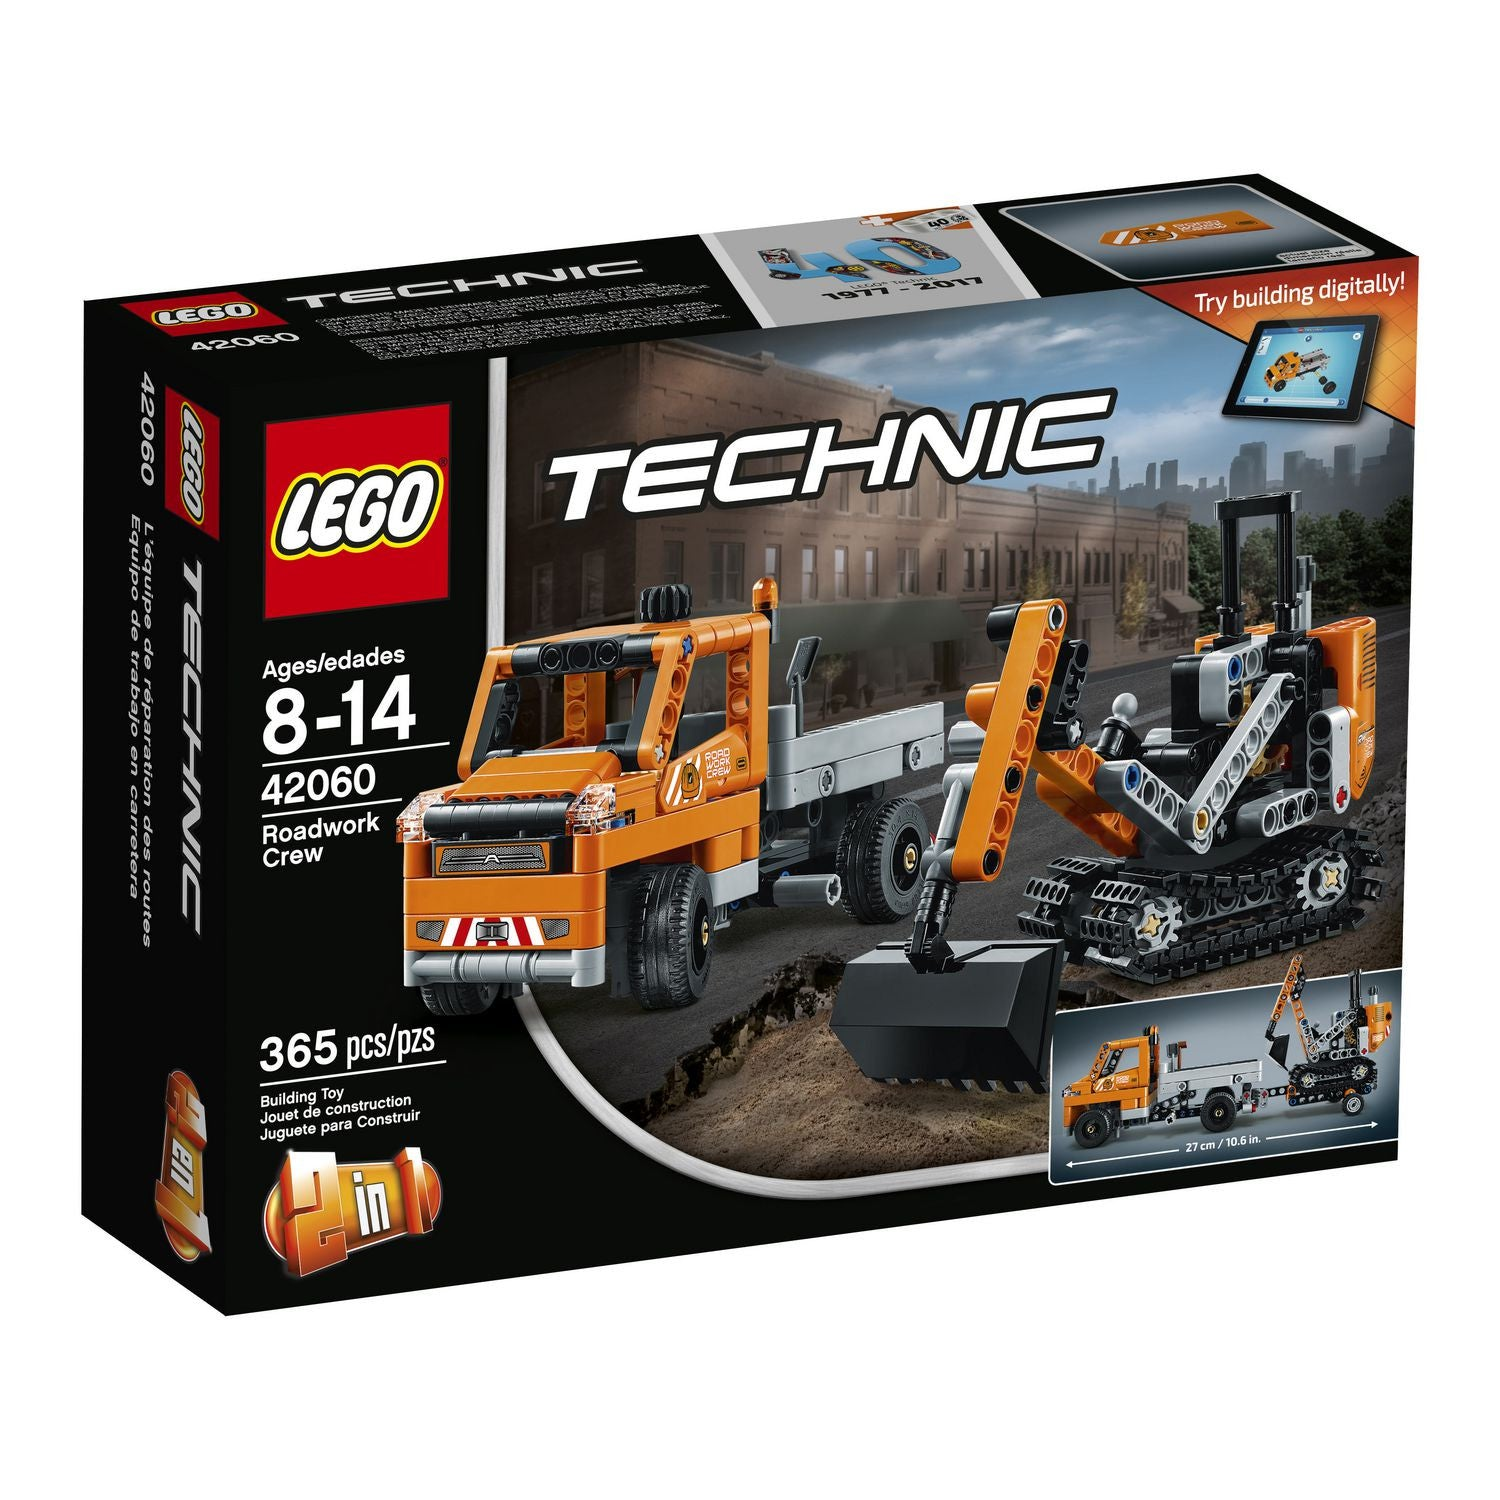 LEGO Technic - Roadwork Crew (42060)